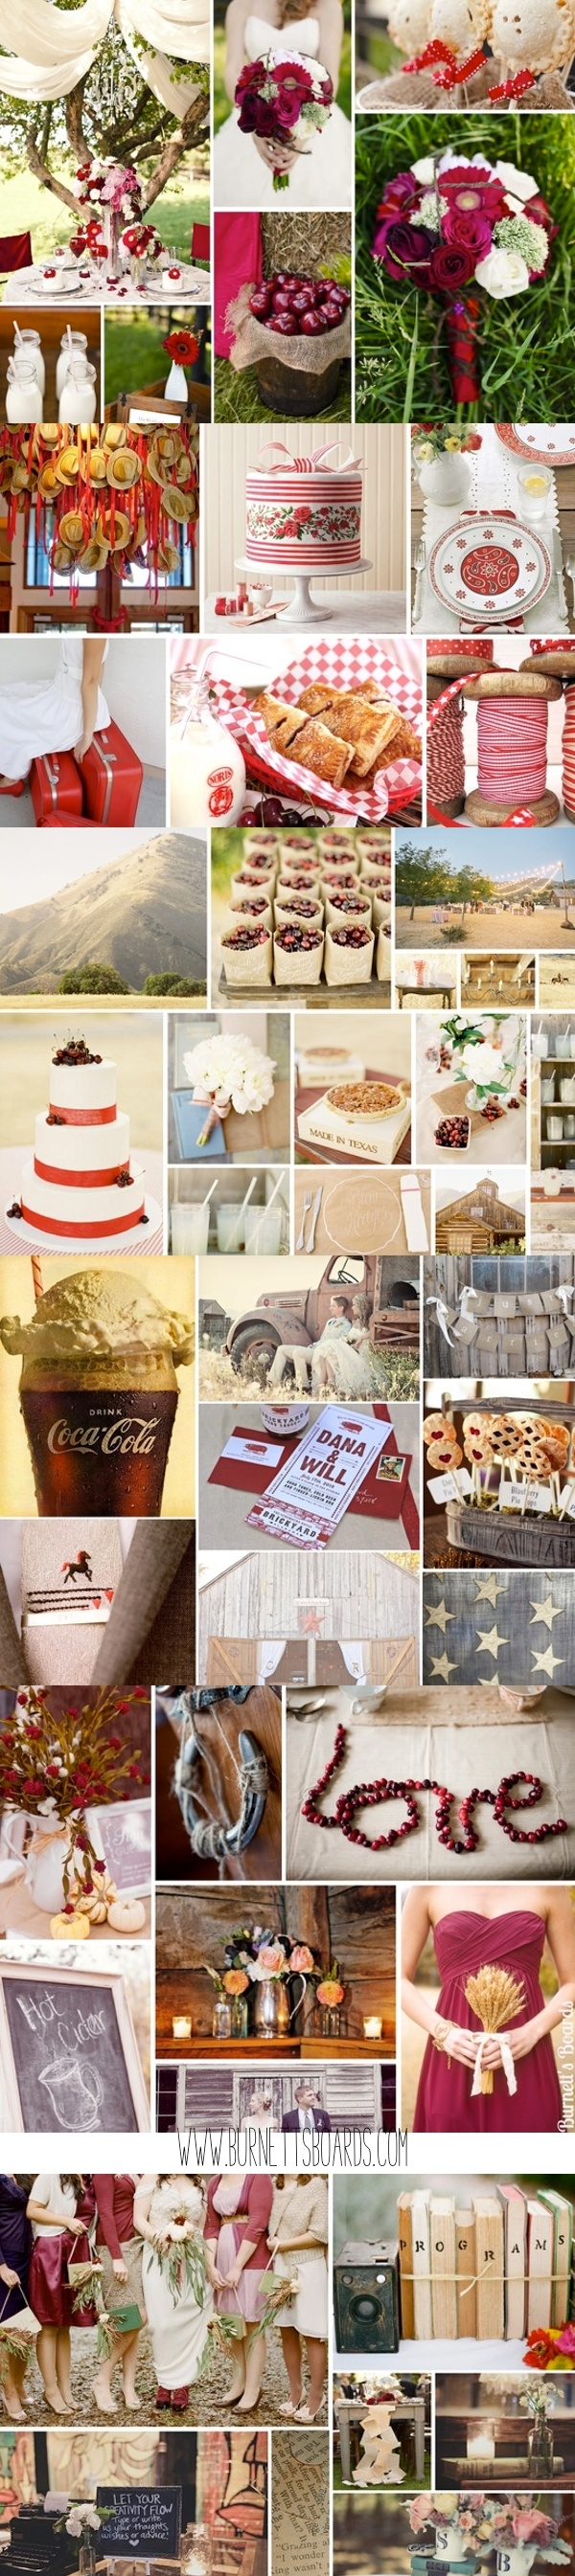 categories special topic wedding boards photos video